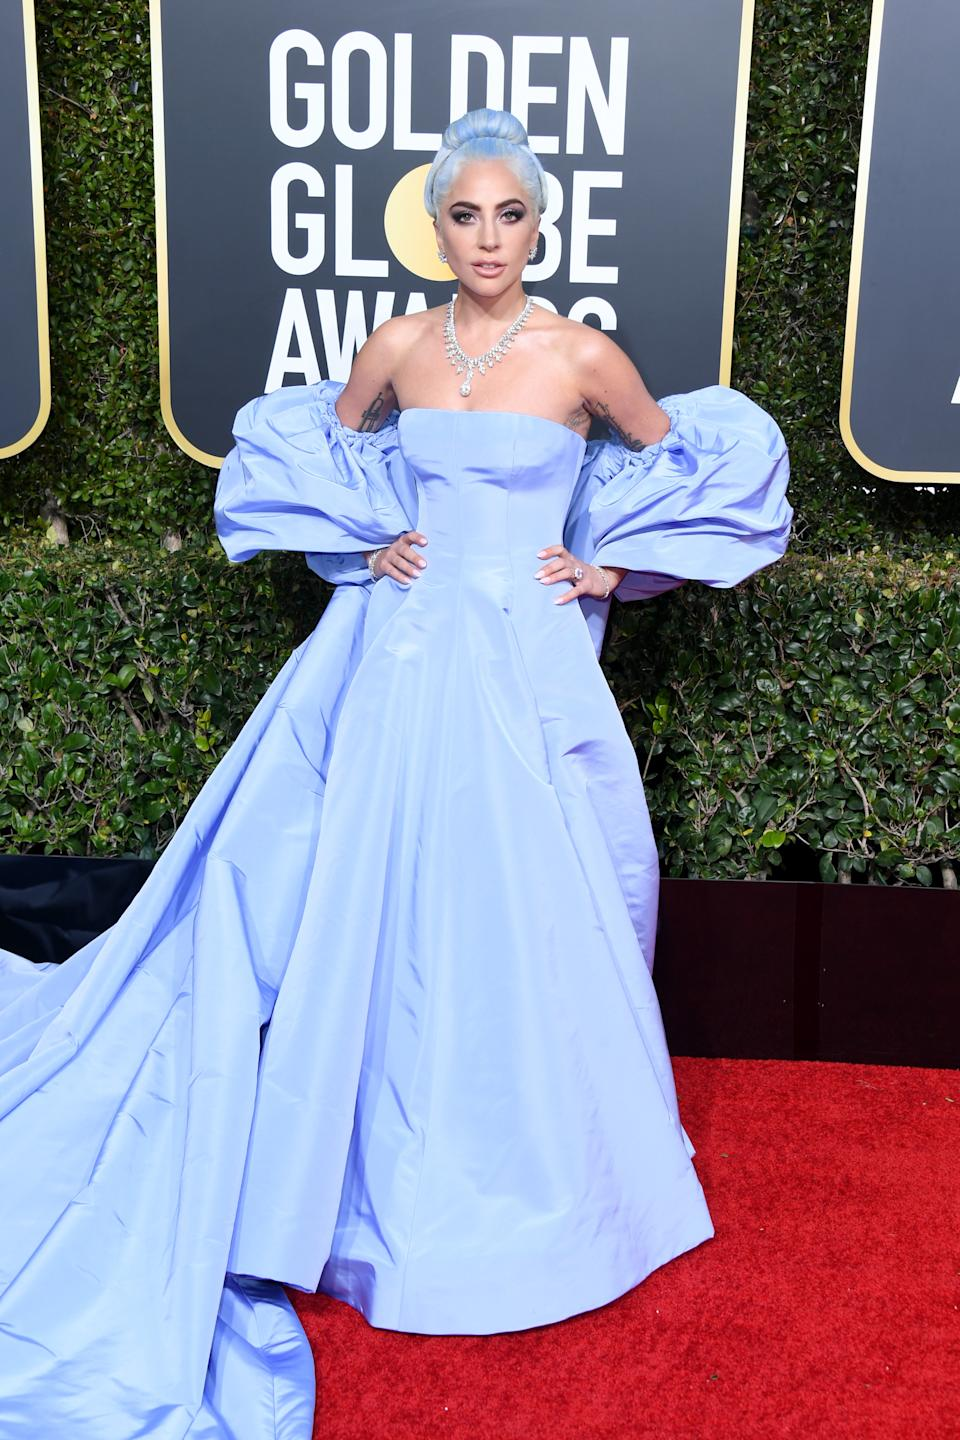 "<p>Lady Gaga has worn some questionable gowns over the years (i.e. the infamous meat dress) however the ""Star is Born"" actress opted for a timeless Valentino gown for the 2019 awards. (Image via Getty Images)</p>"